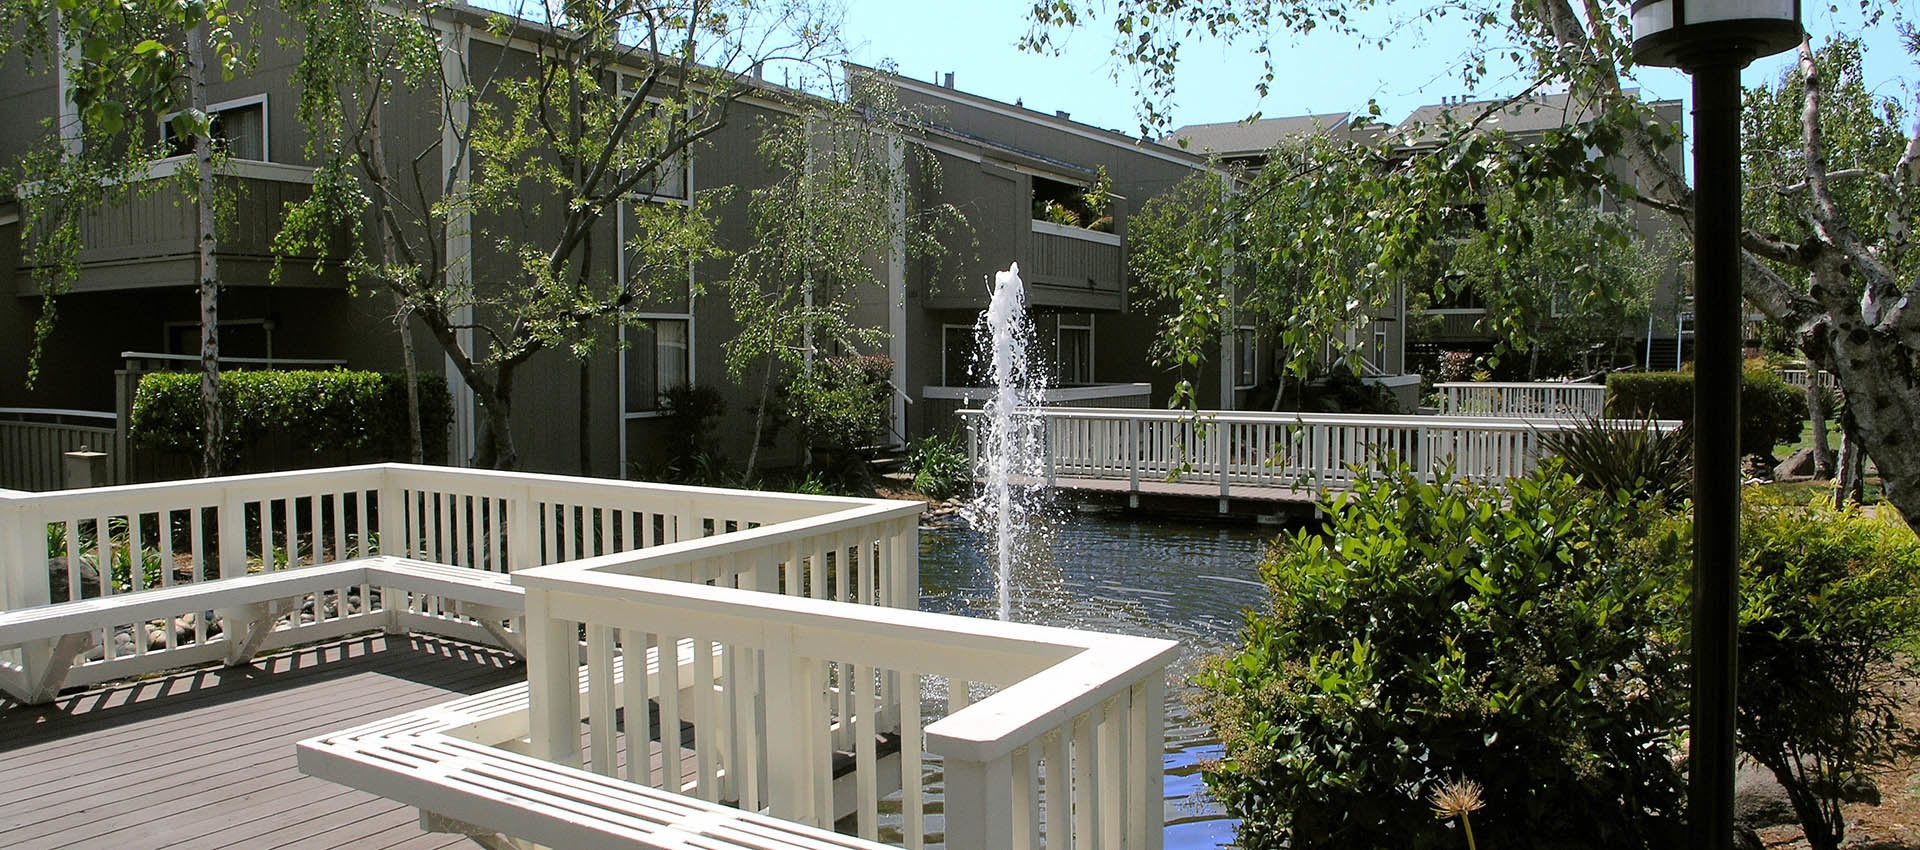 Enjoy the many amenities at Ballena Village Apartment Homes